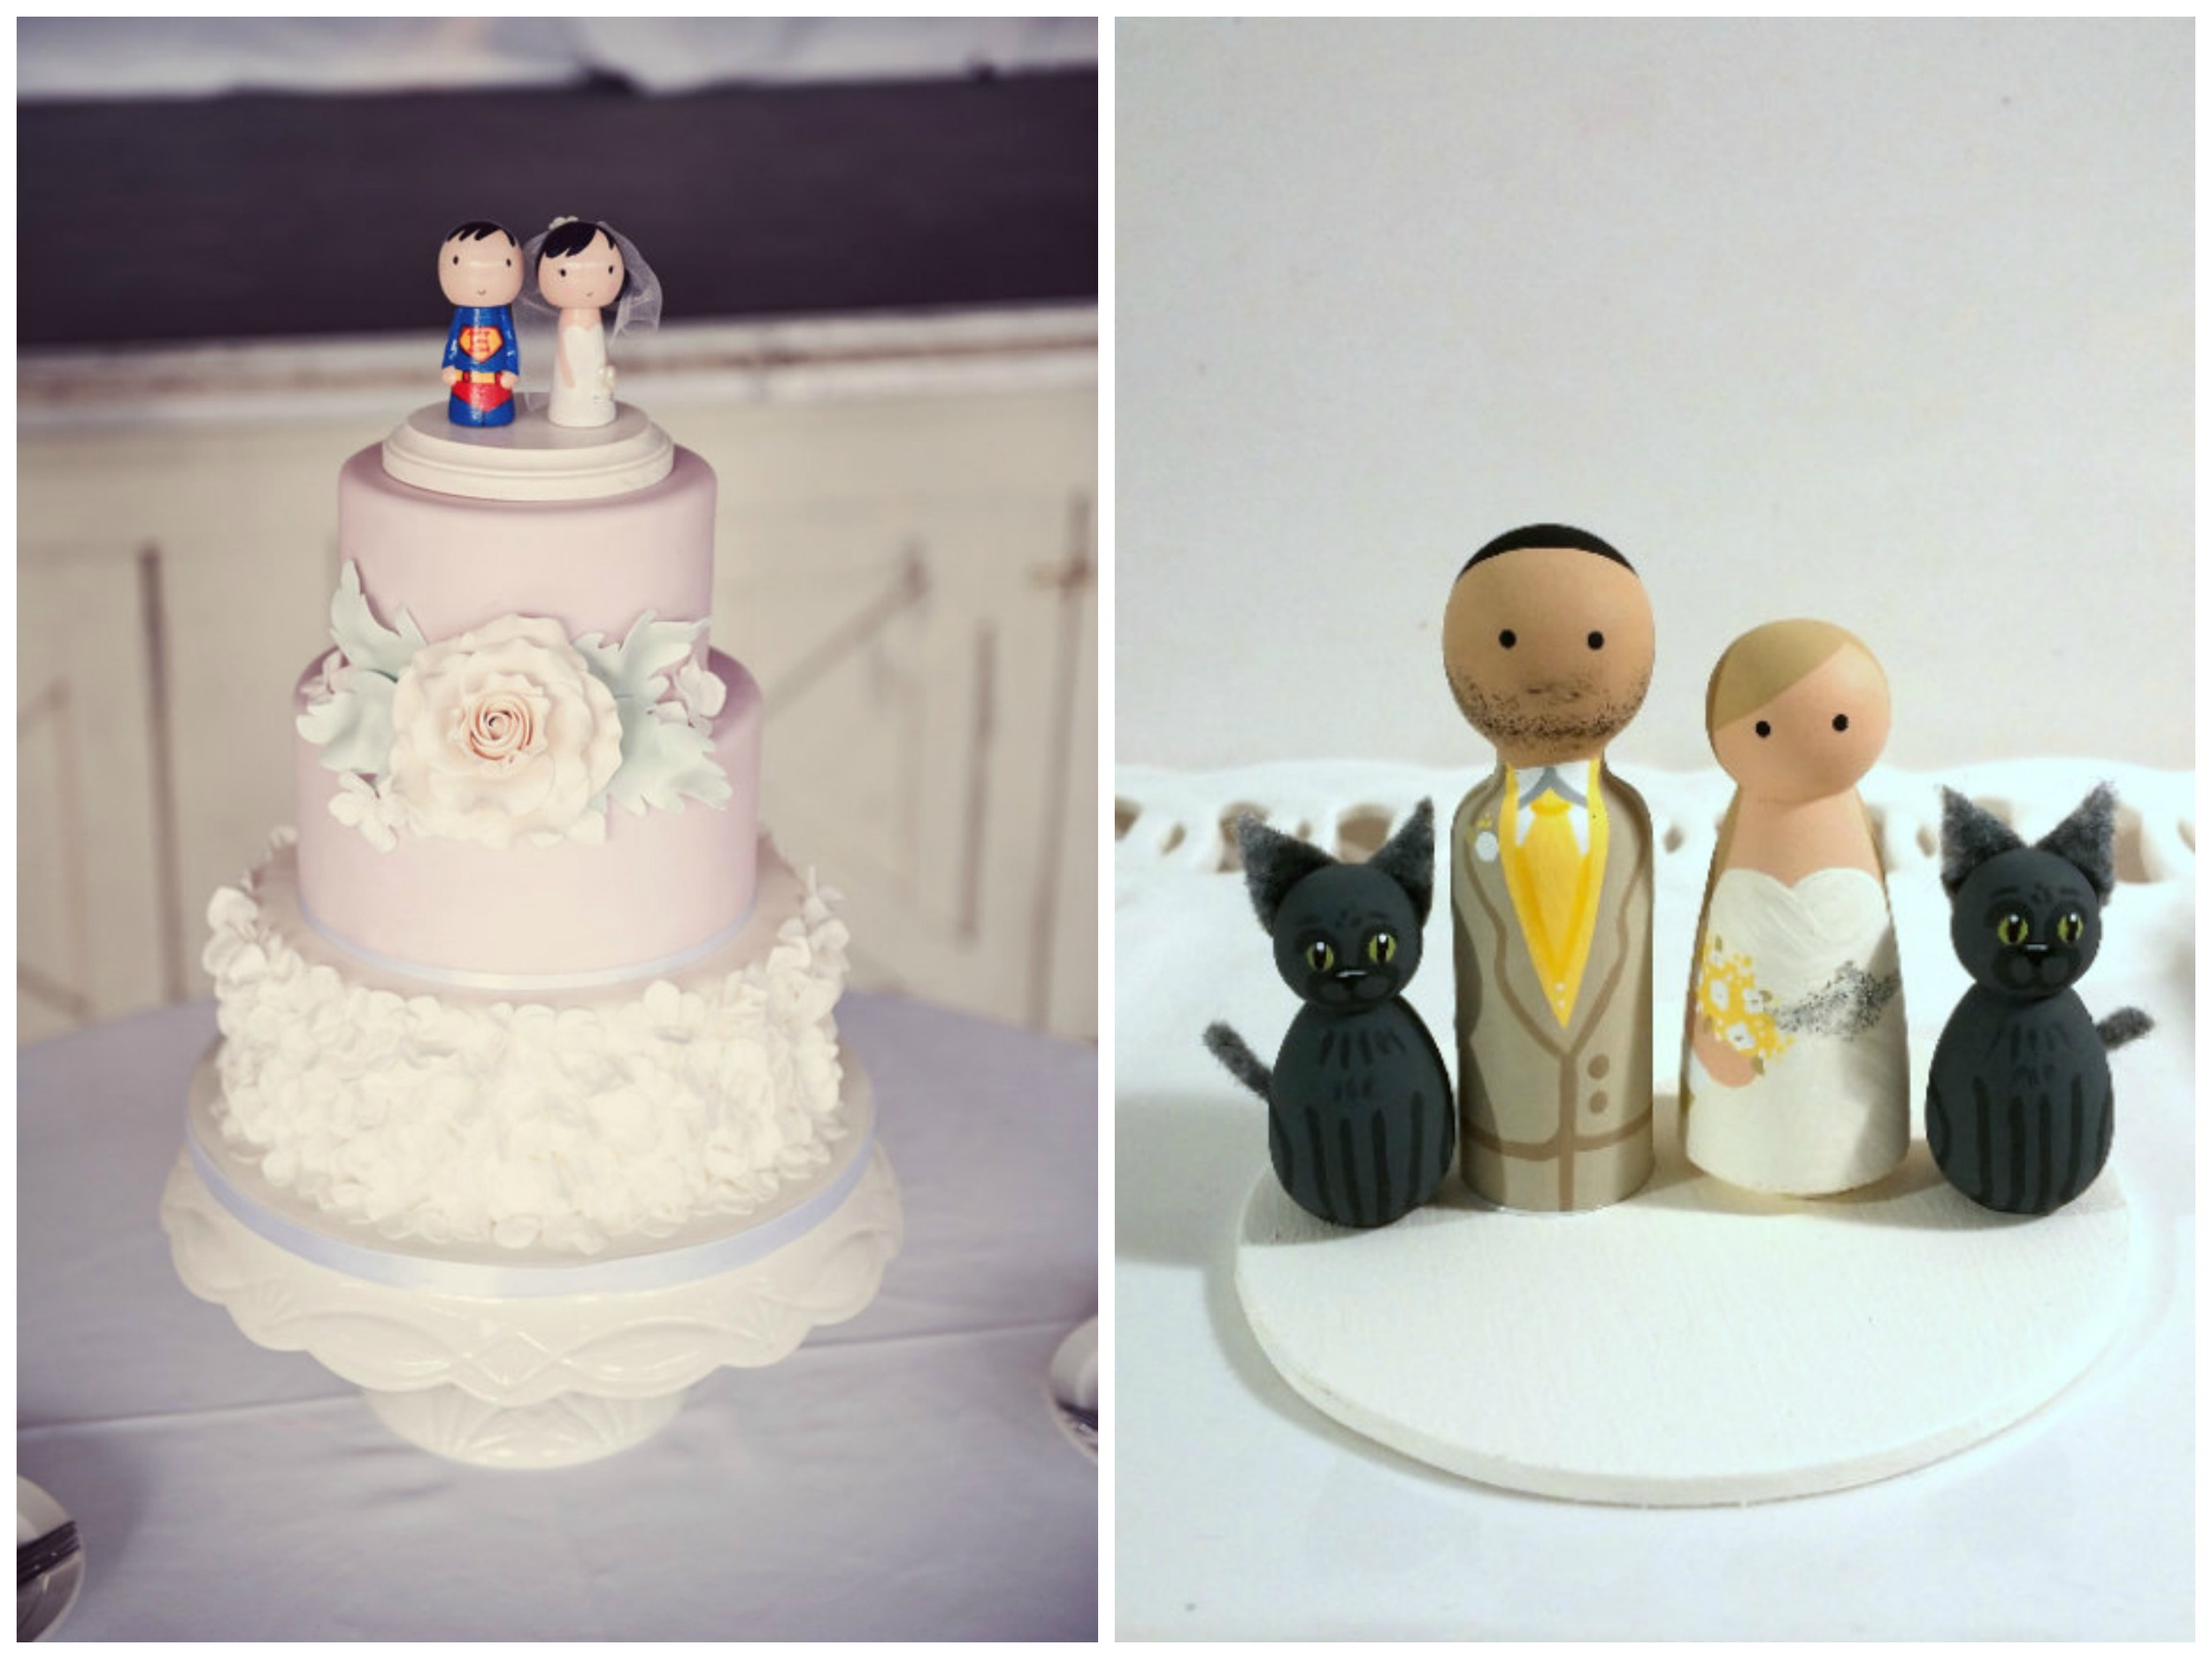 Etsy has no shortage of  peg doll cake toppers . They're extremely customizable, and you can get them in a whole bunch of themes: military, superhero, lots of different occupations, with children, with pets, etc. This  superhero and his bride ($90) from  Sugar Plum Pegs  are so precious! And don't even get me started on  this bride and groom with two cats ($98) from  Enamor Weddings .